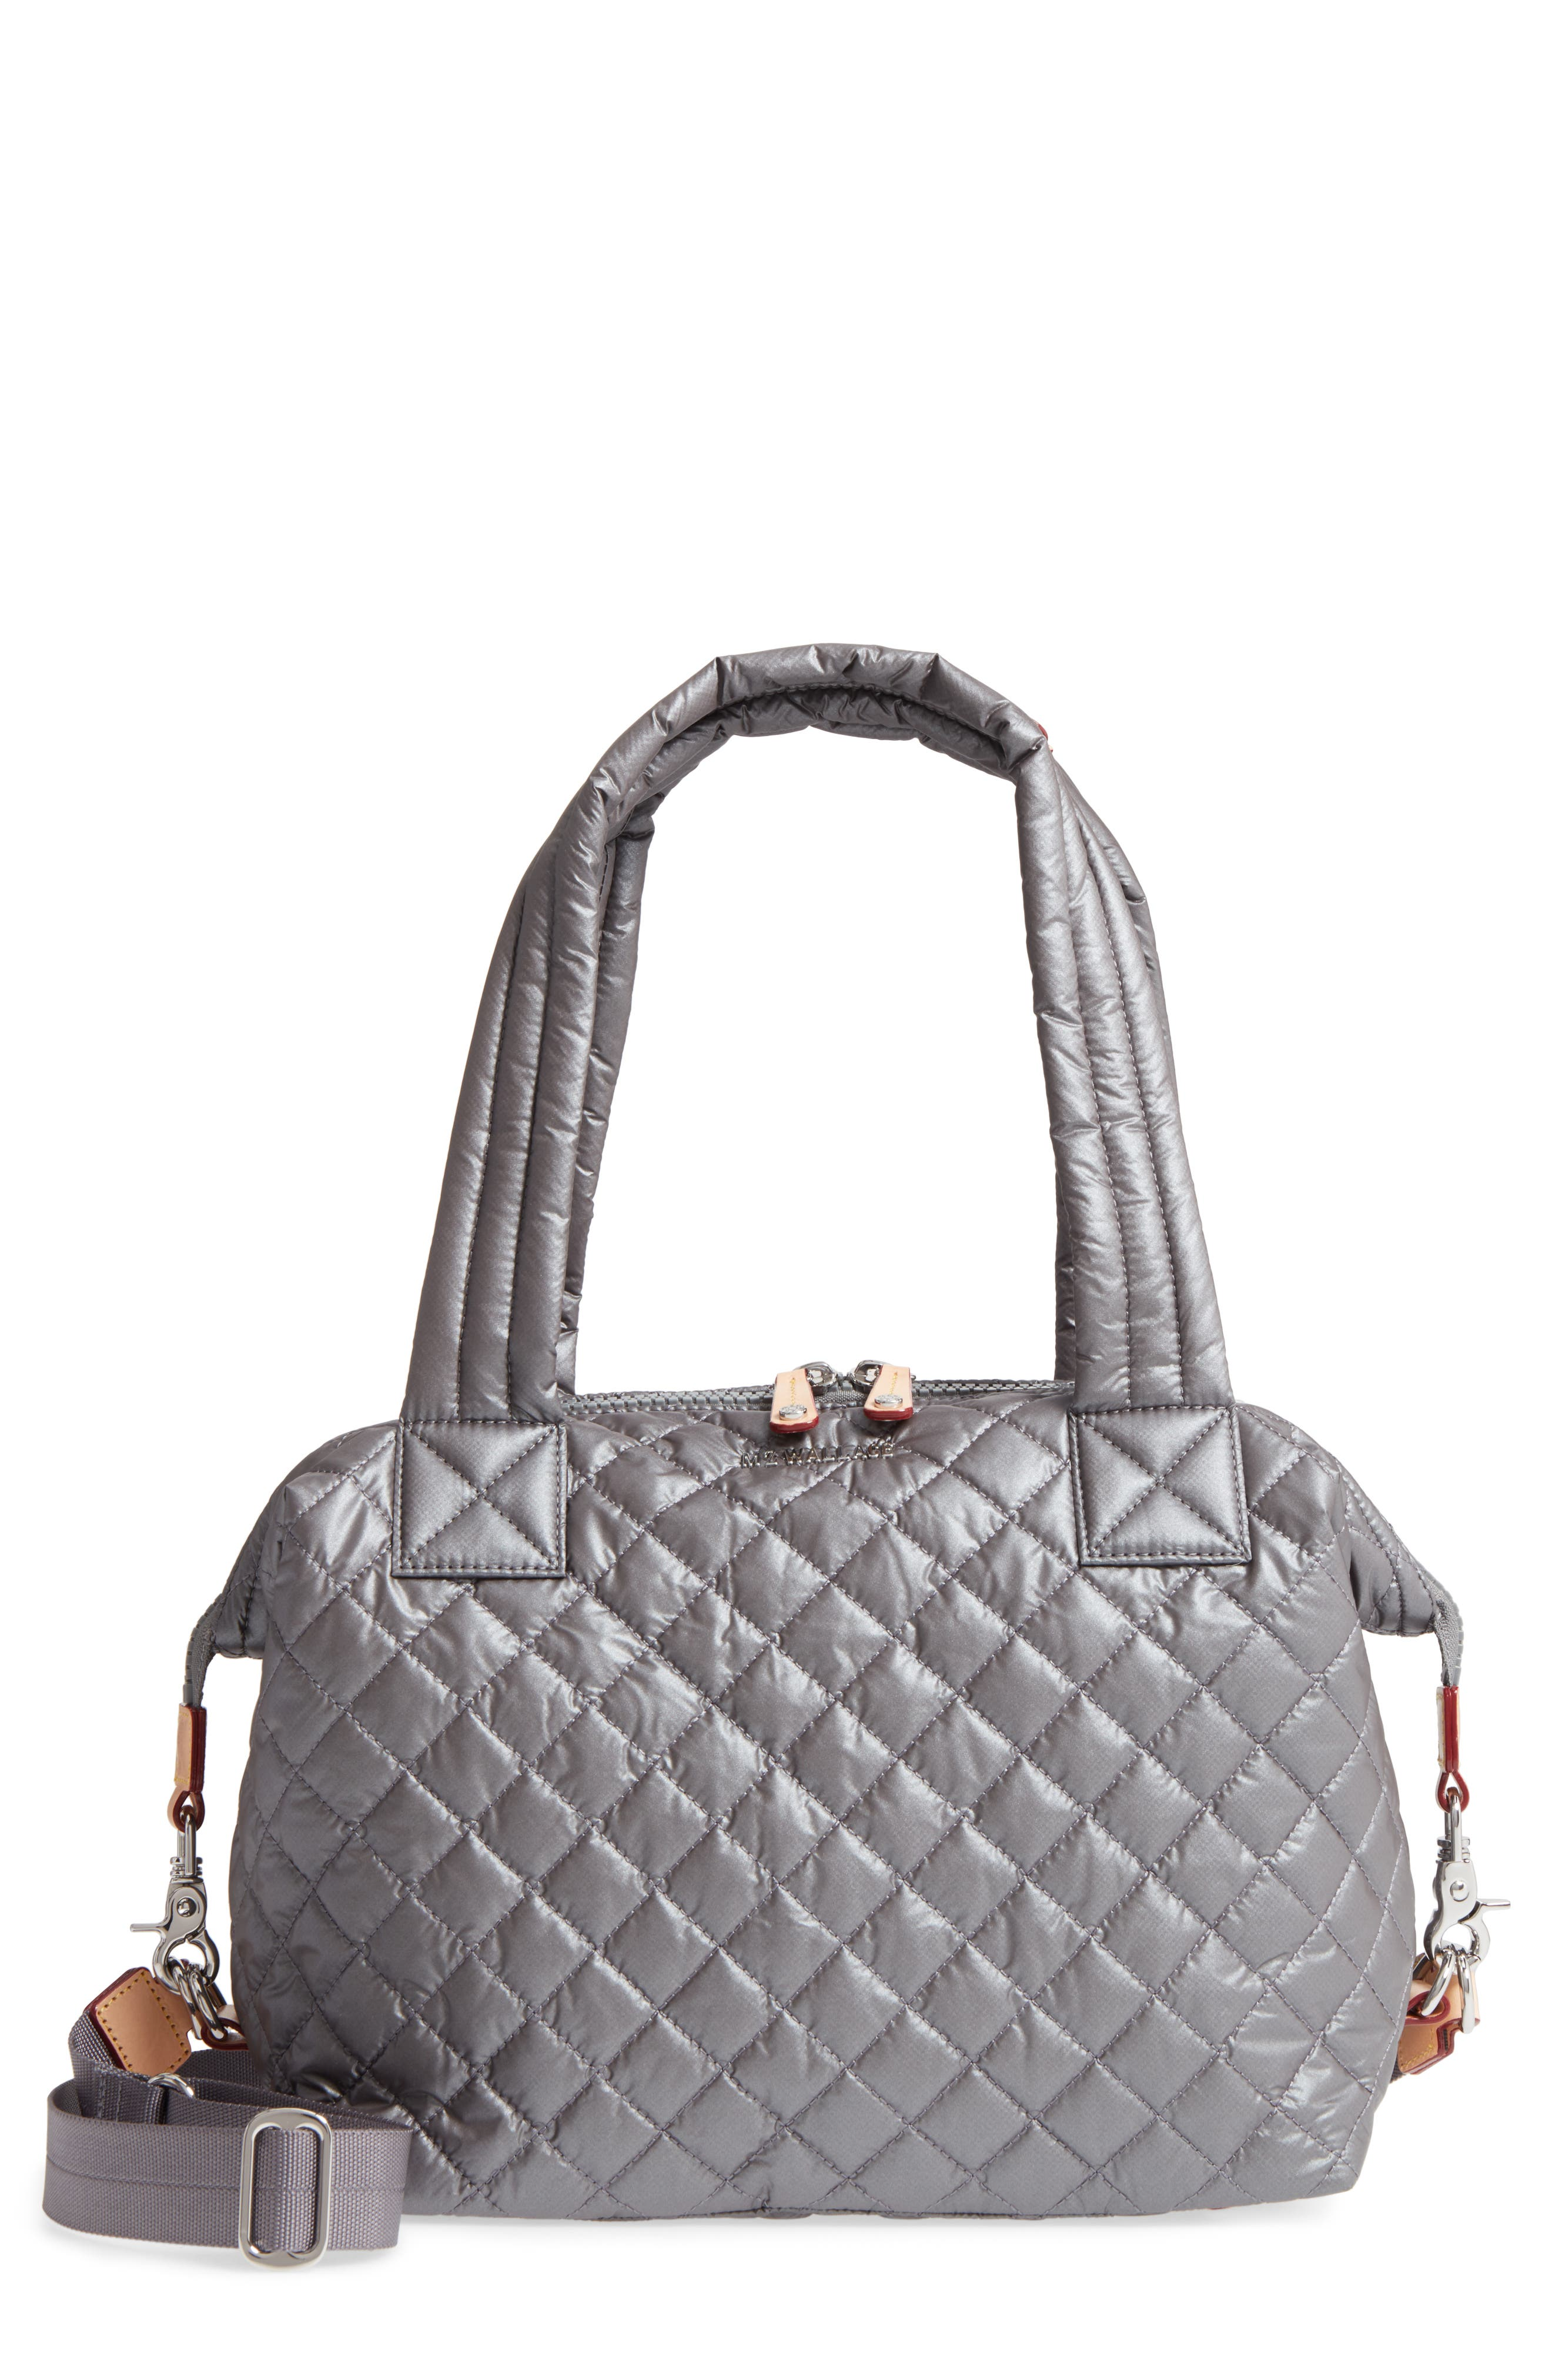 Alternate Image 1 Selected - MZ Wallace 'Medium Sutton' Quilted Oxford Nylon Shoulder Tote